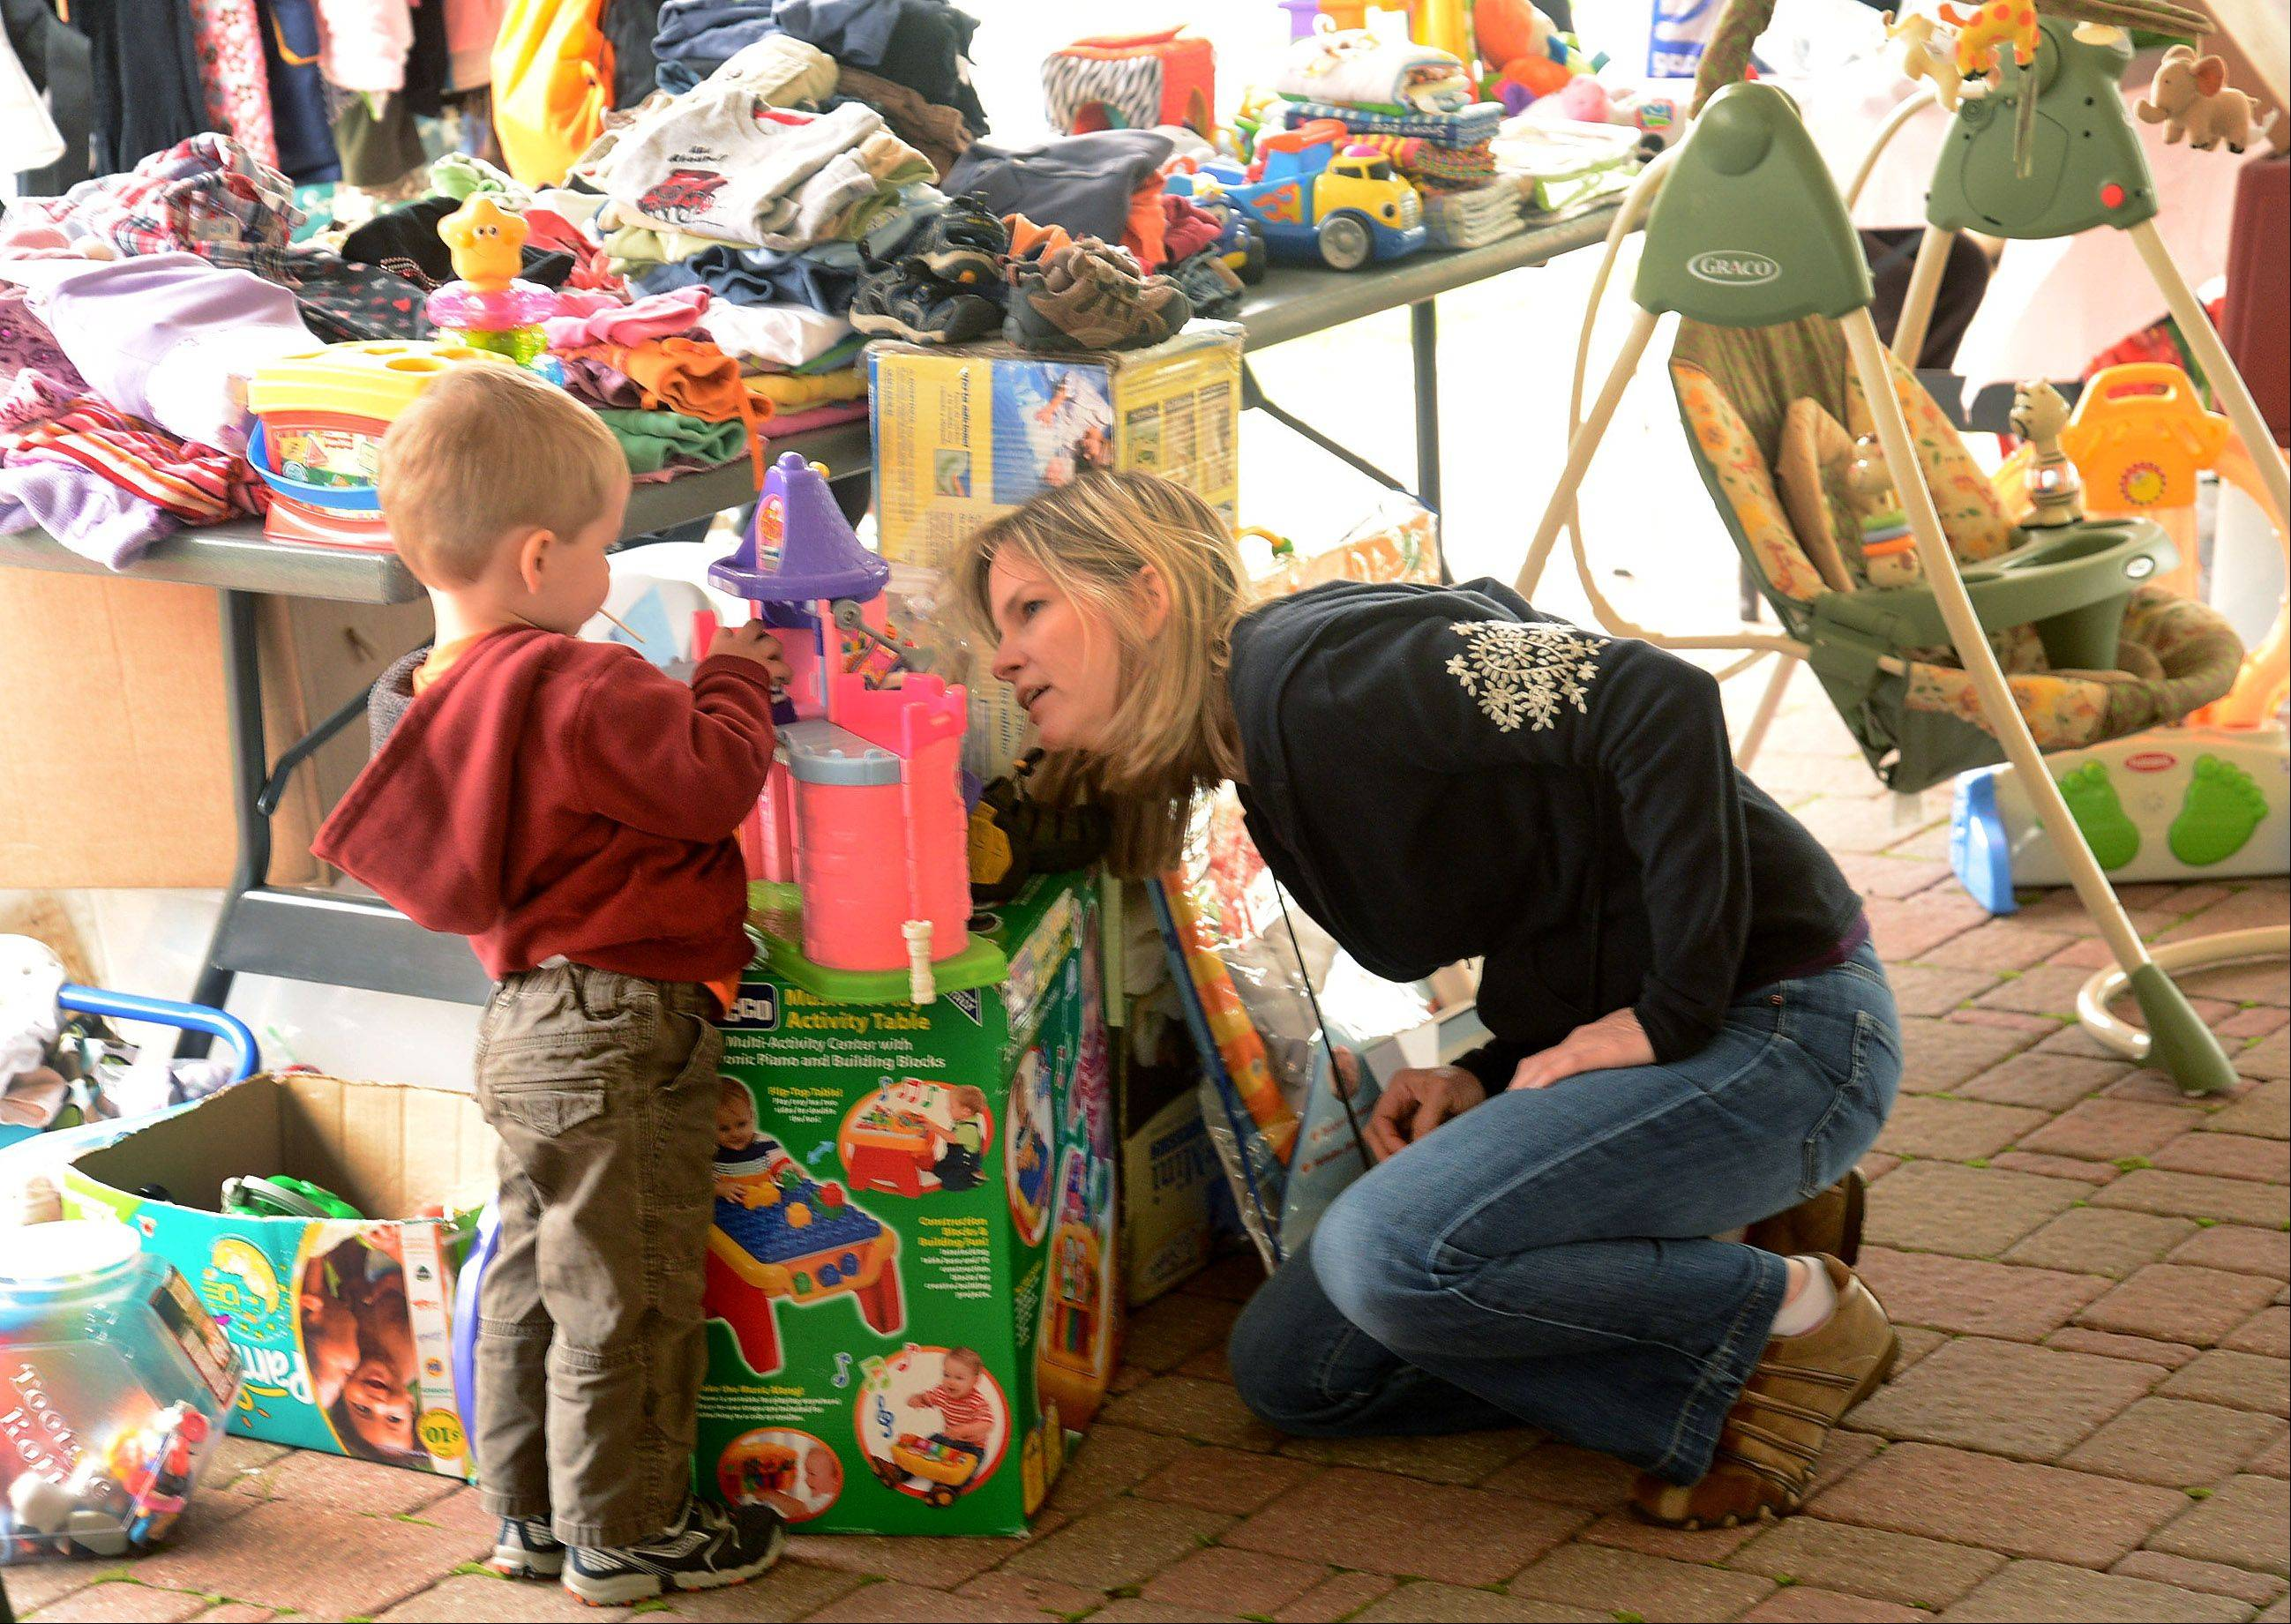 Robyn Russo of Arlington Heights and her 2-year-old son Matthew shop for childrens toys and books at the Salt Creek Rural Park District's community garage sale at Twin Lakes Recreation Area in Palatine.